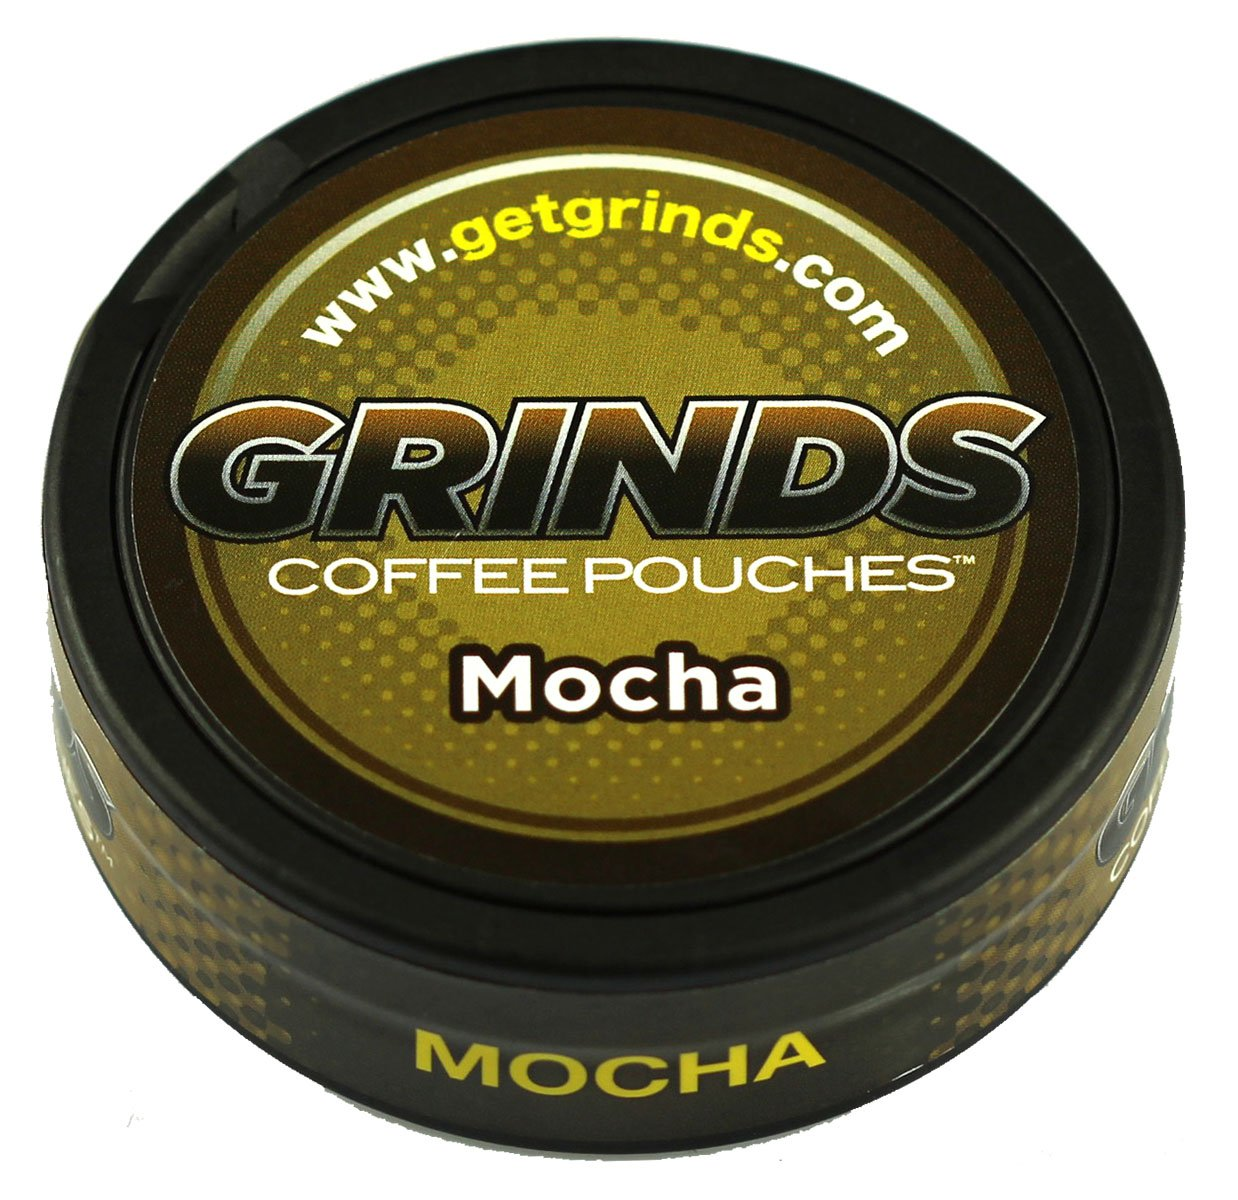 Mocha Grinds Coffee Pouches